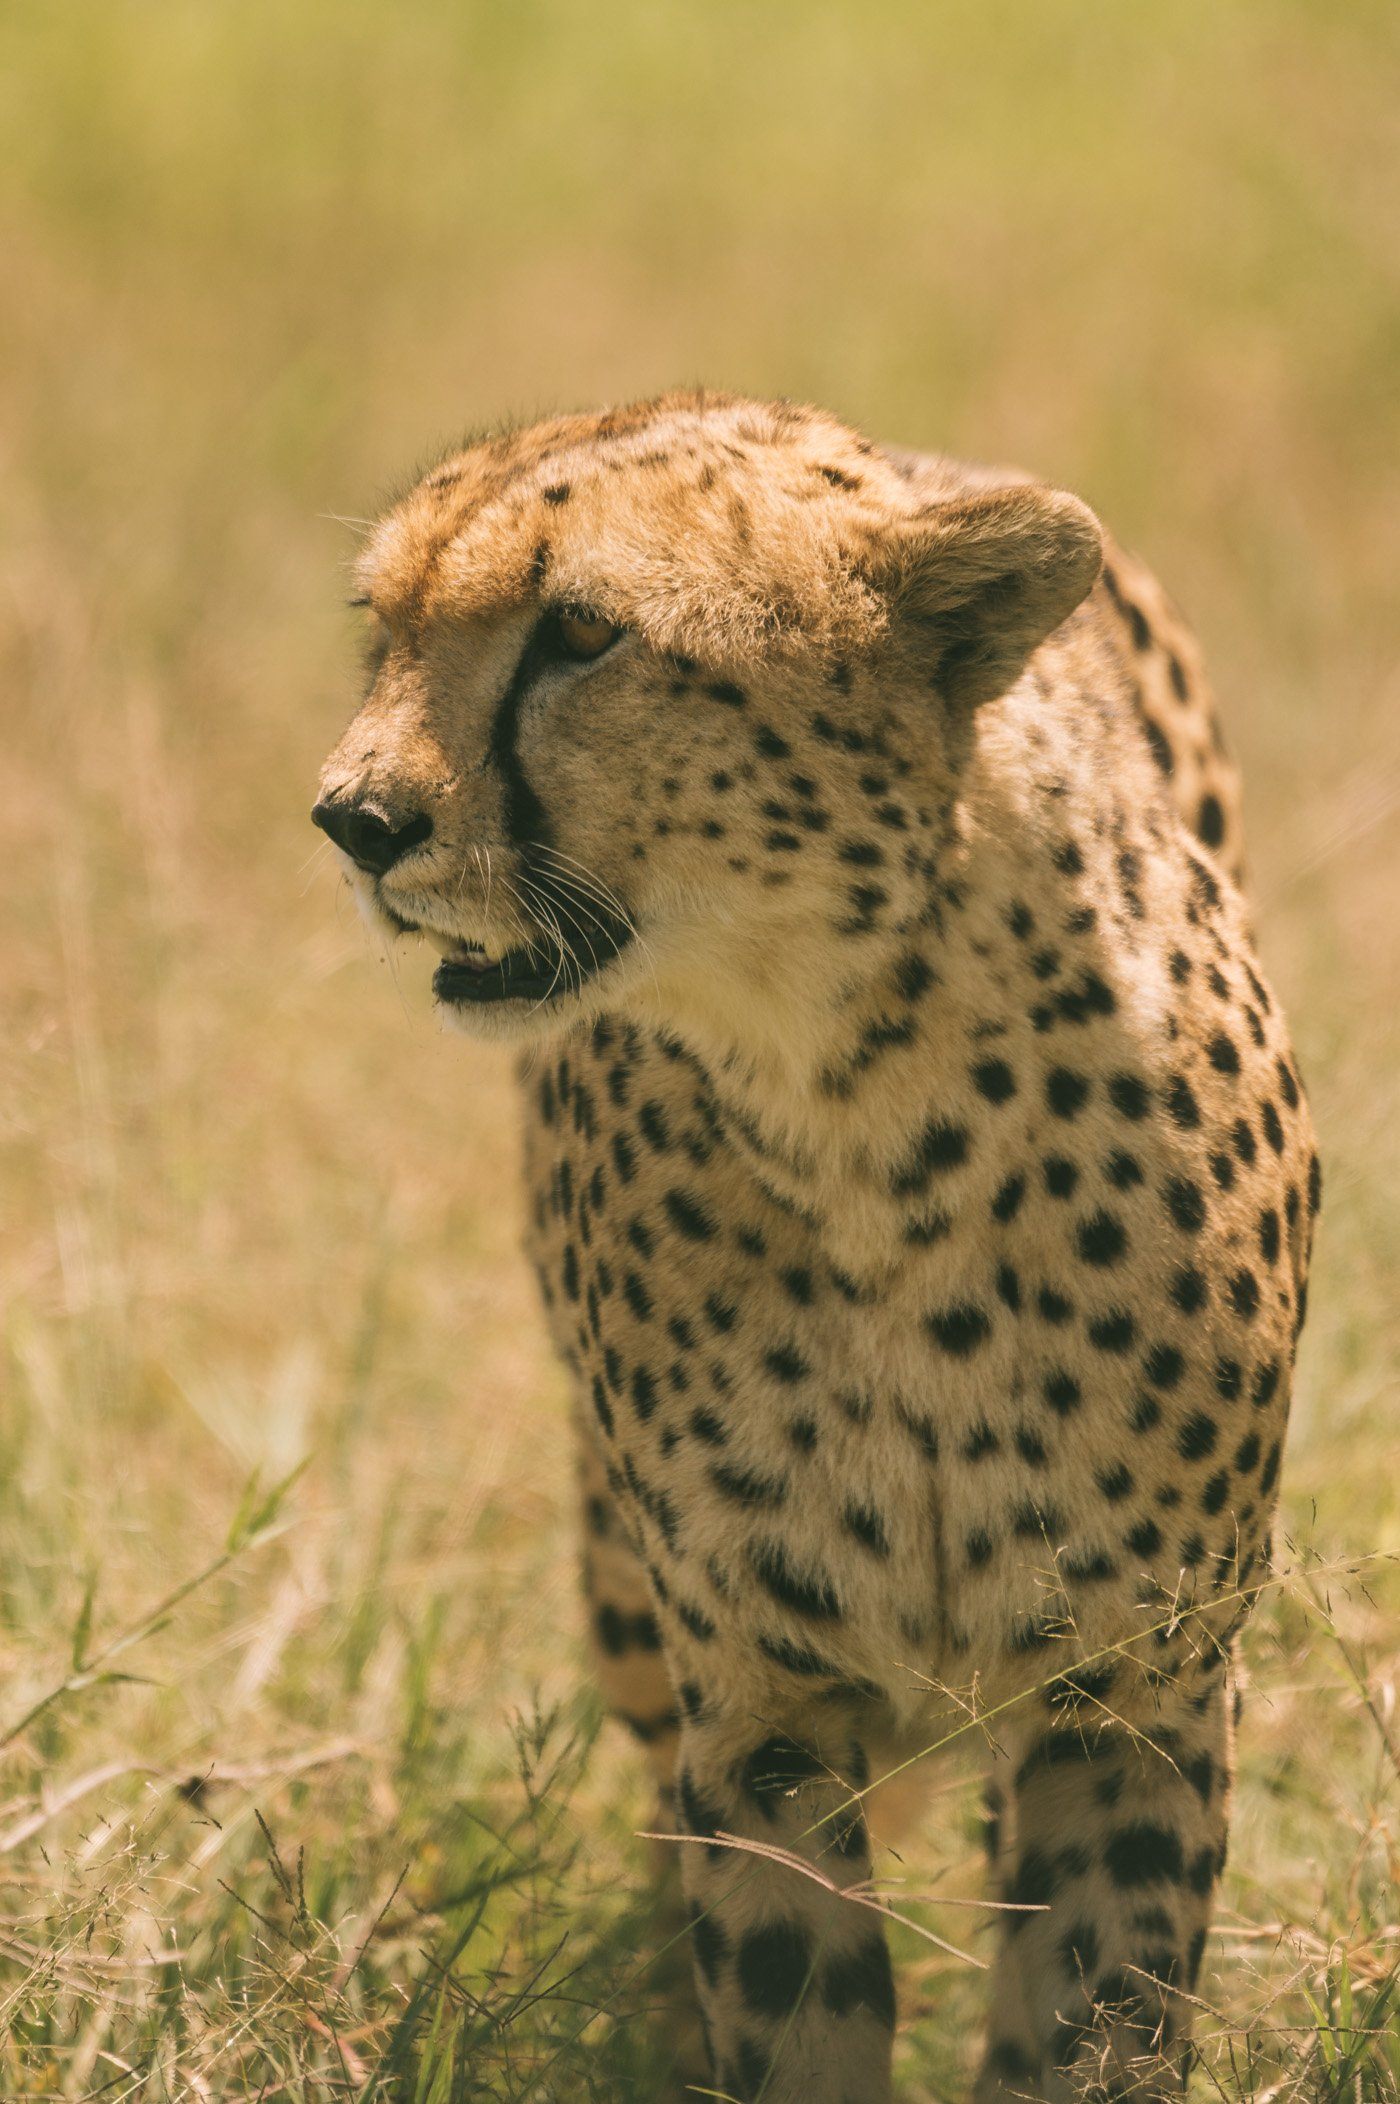 One of the males of the Coalition of five cheetah brothers in the Maasai Mara Kenya